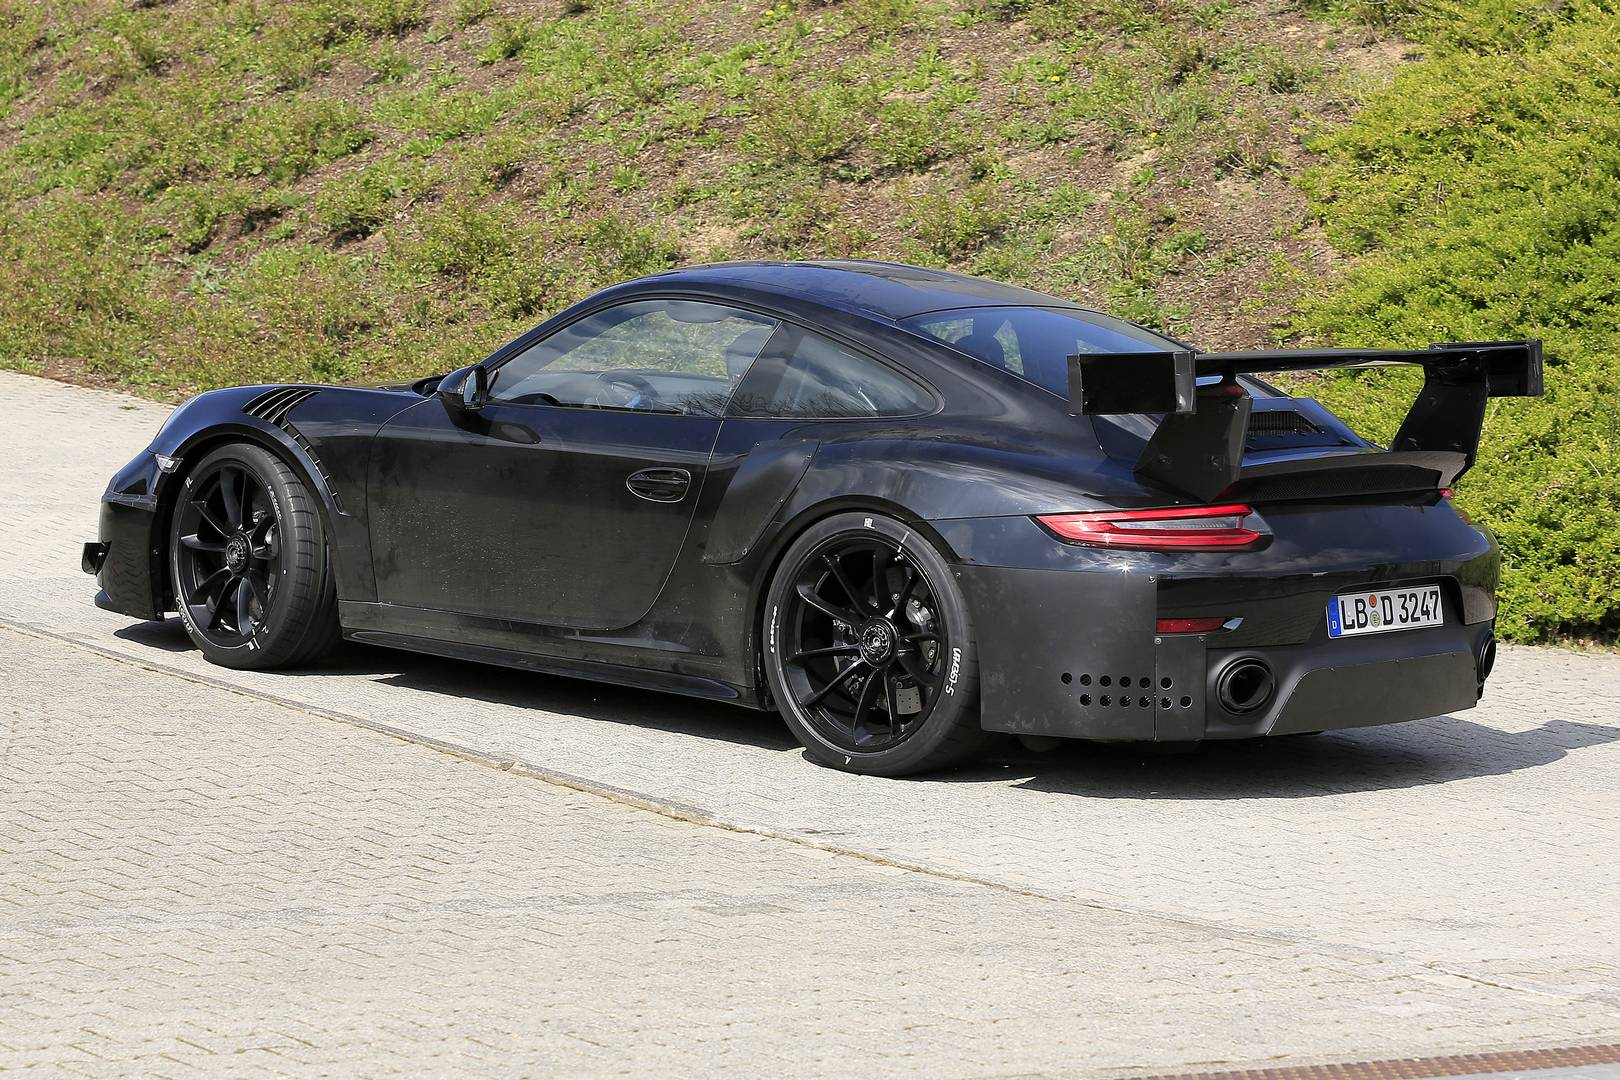 2018 Porsche 911 GT2 RS Spy Shots At The Nurburgring